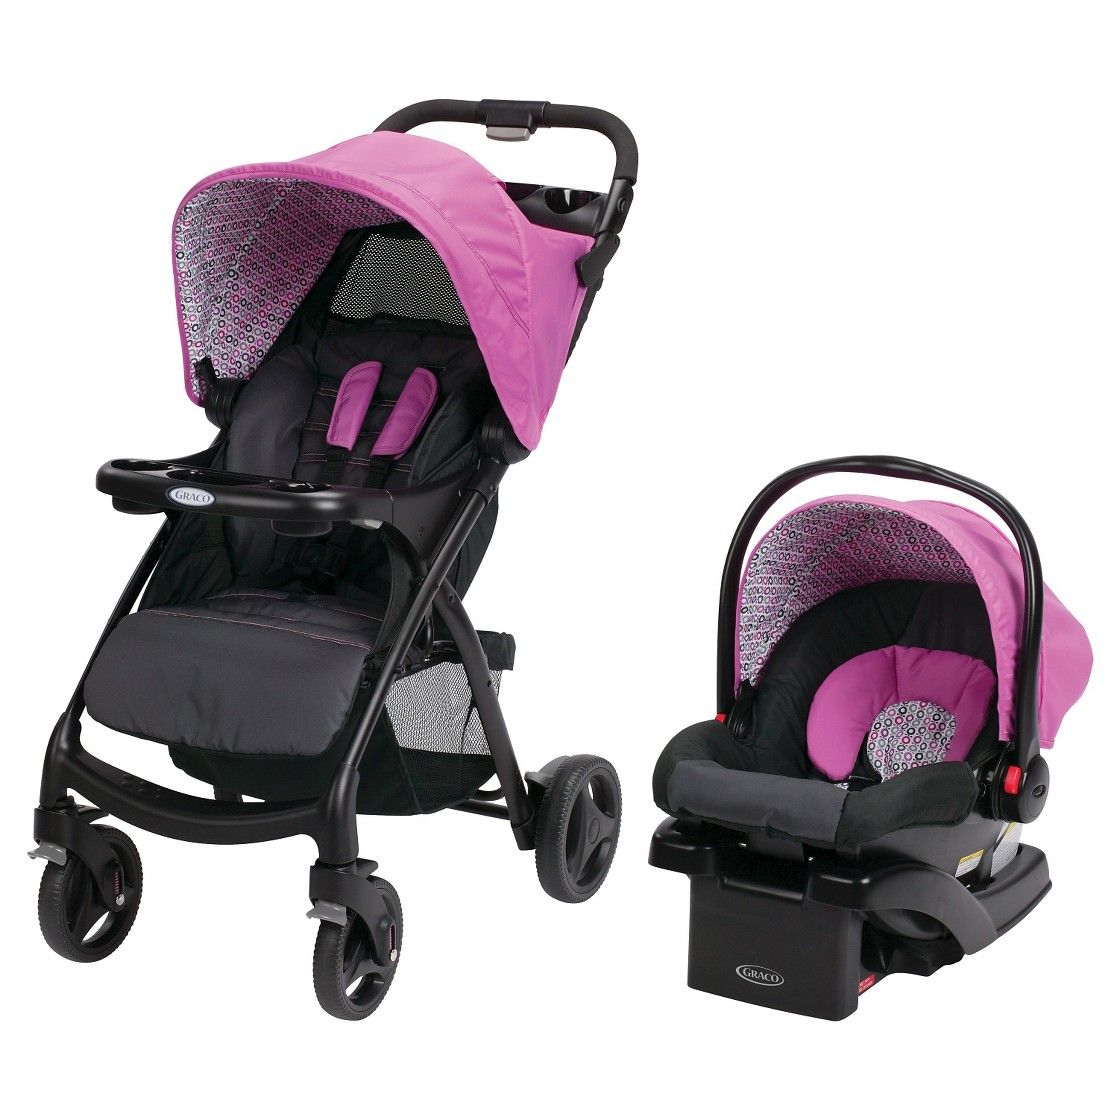 Graco Verb Click Connect Travel System (With images